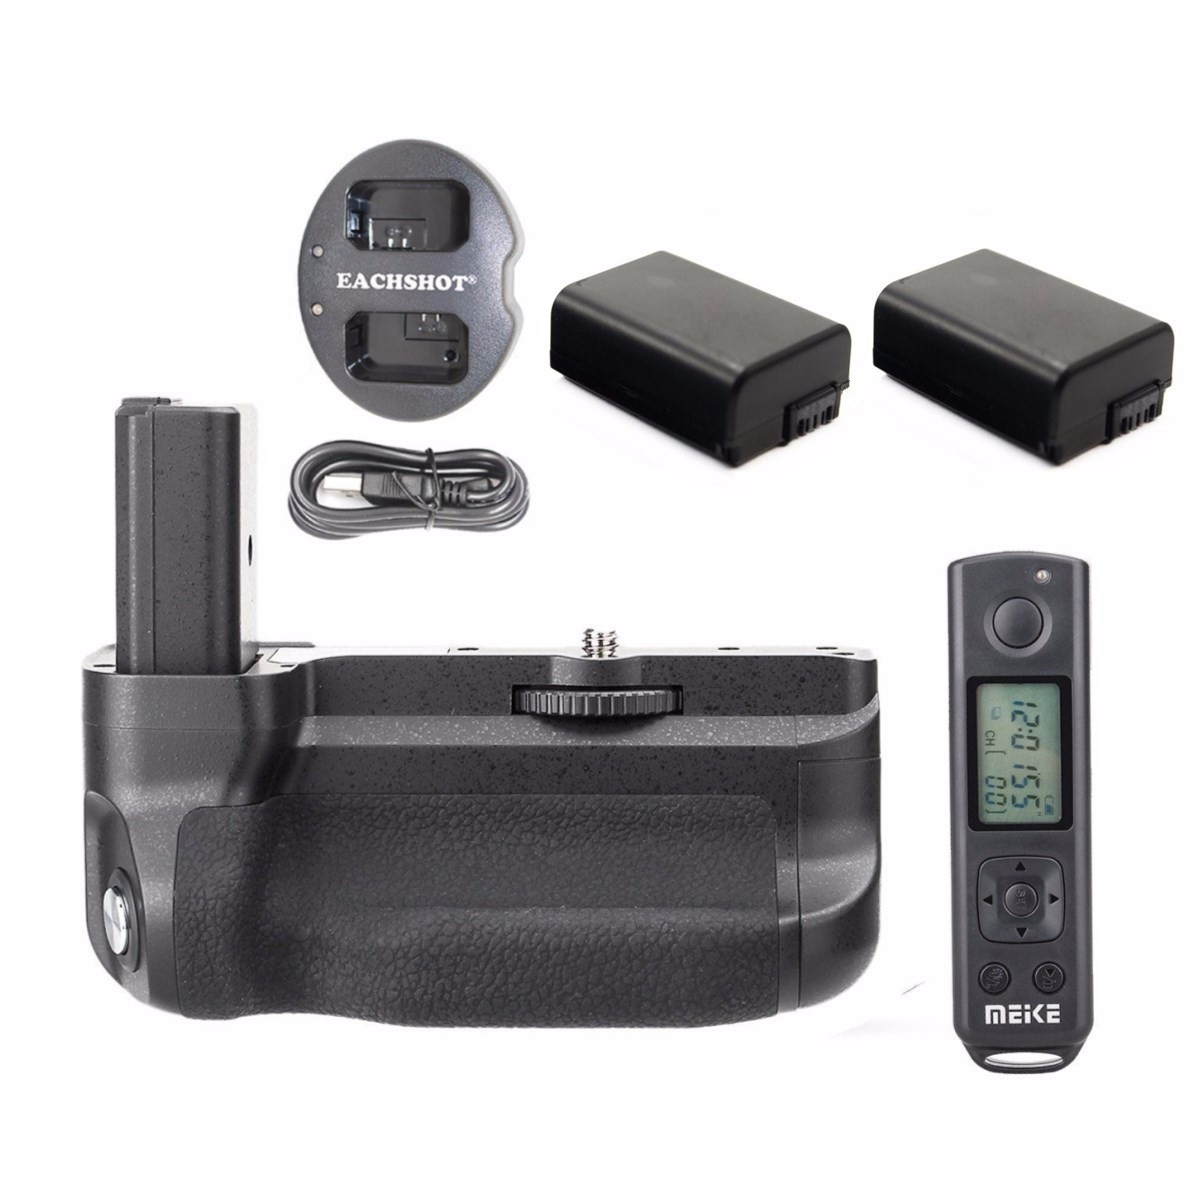 Meike MK-A6300 Pro 2.4G Wireless Control Battery Grip For Sony A6300 + 2* NP-FW50 batteries + dual charger meike mk a6300 pro remote control battery grip 2 4g wireless remote control for sony a6300 ilce a6300 np fw50